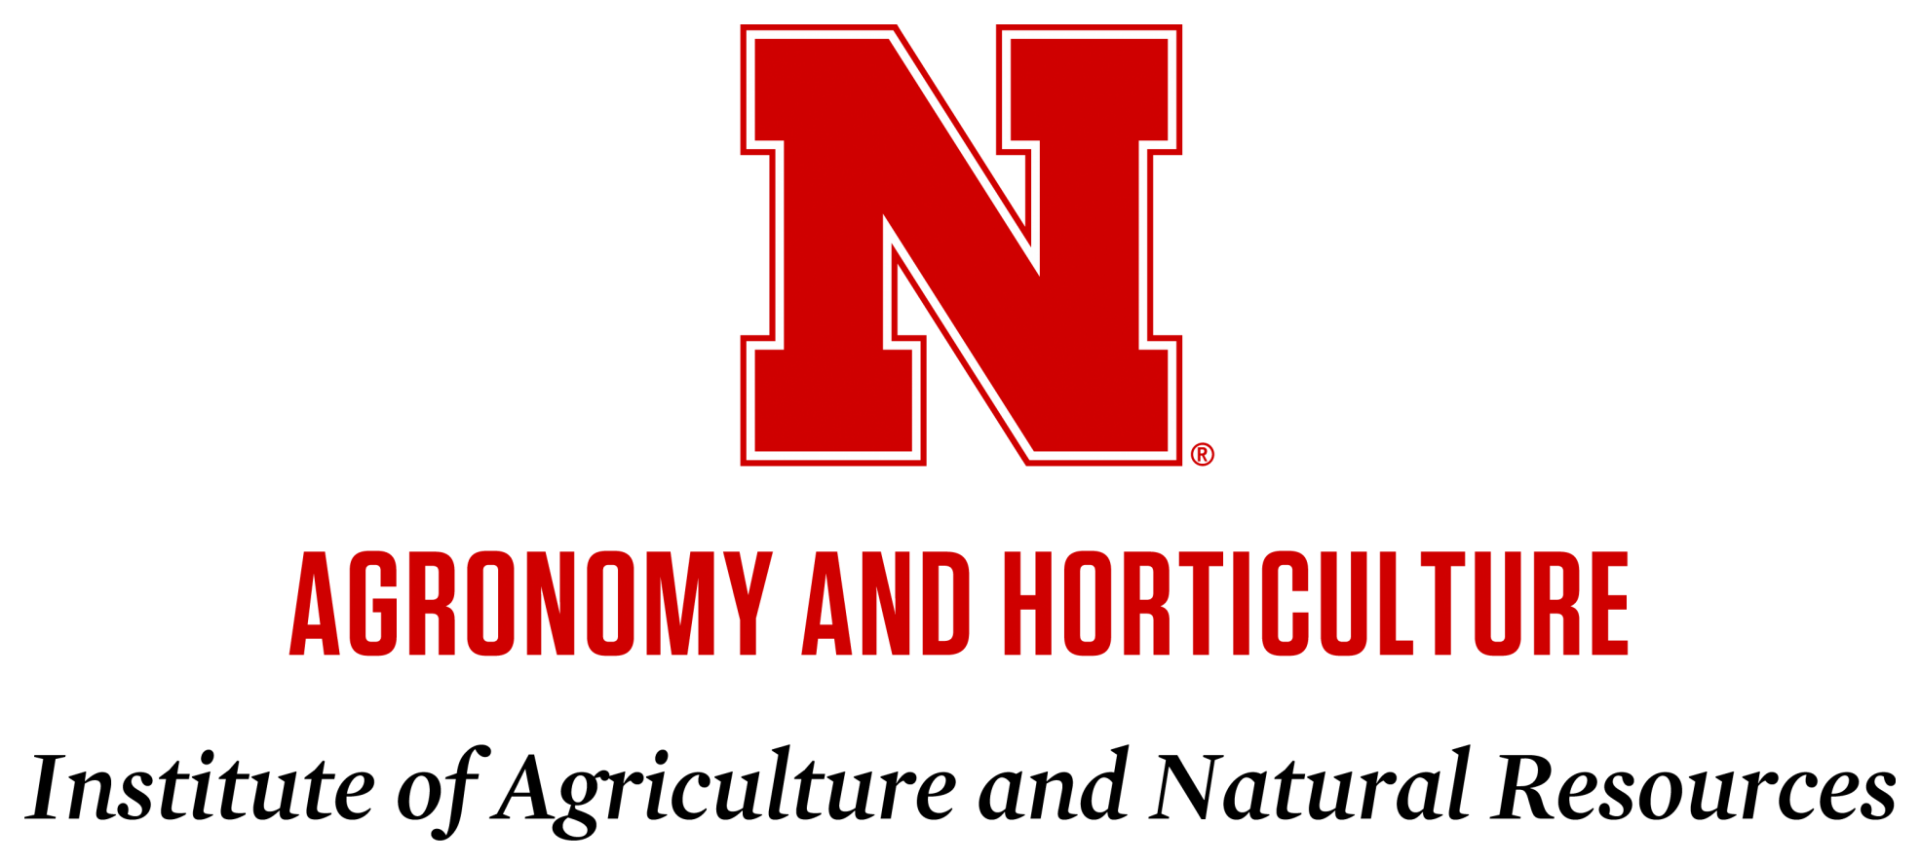 University of Nebraska–Lincoln Department of Agronomy and Horticulture